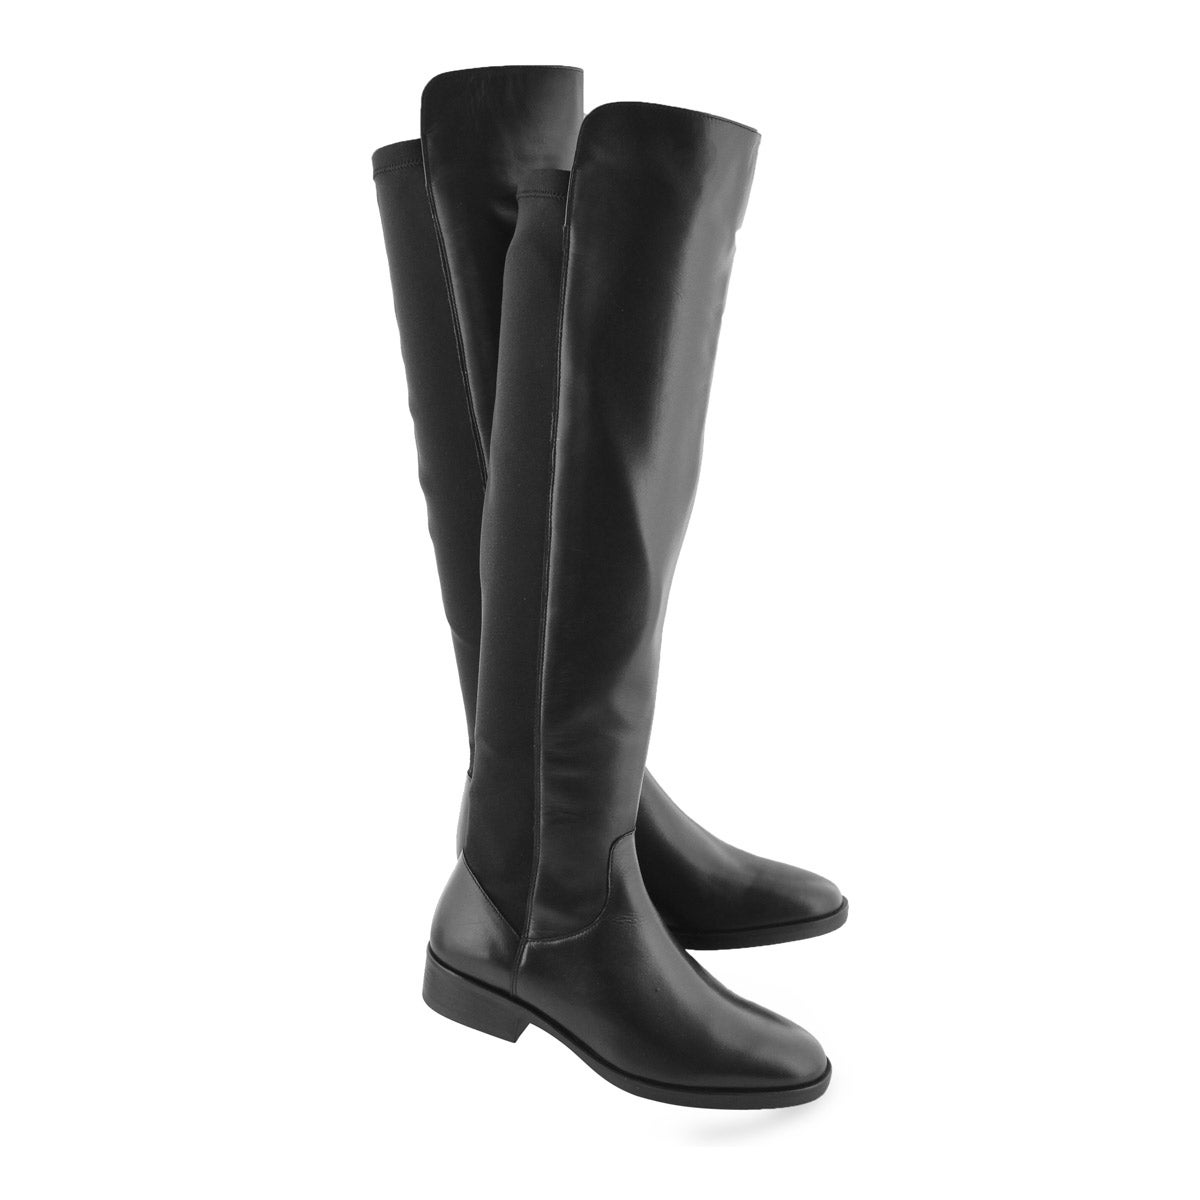 Lds Pure Caddy blk lthr tall dress boot